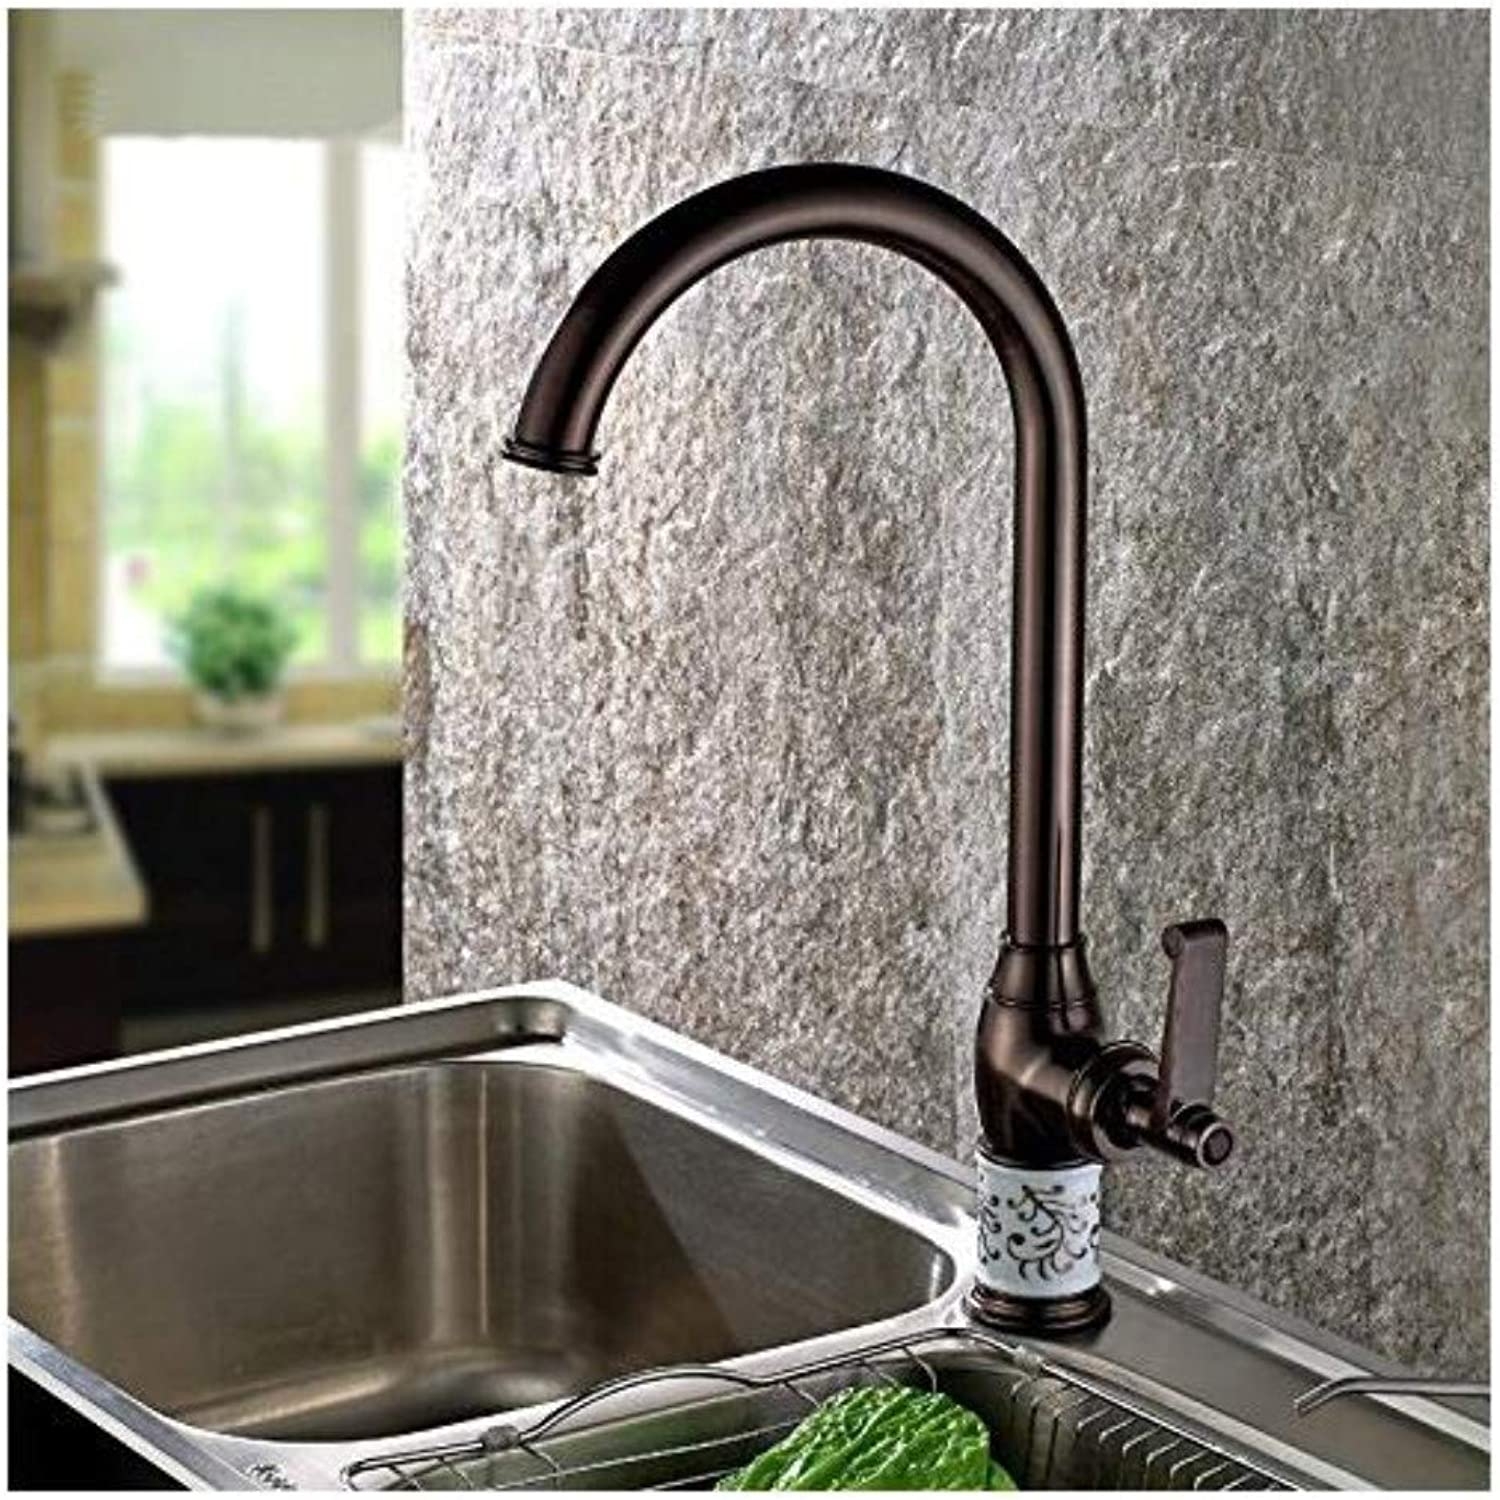 Vintage Plated Faucet Faucet Antique redated Mixer Tap Kitchen Basin Faucet Vintage Brass Basin Faucet Hot and Cold